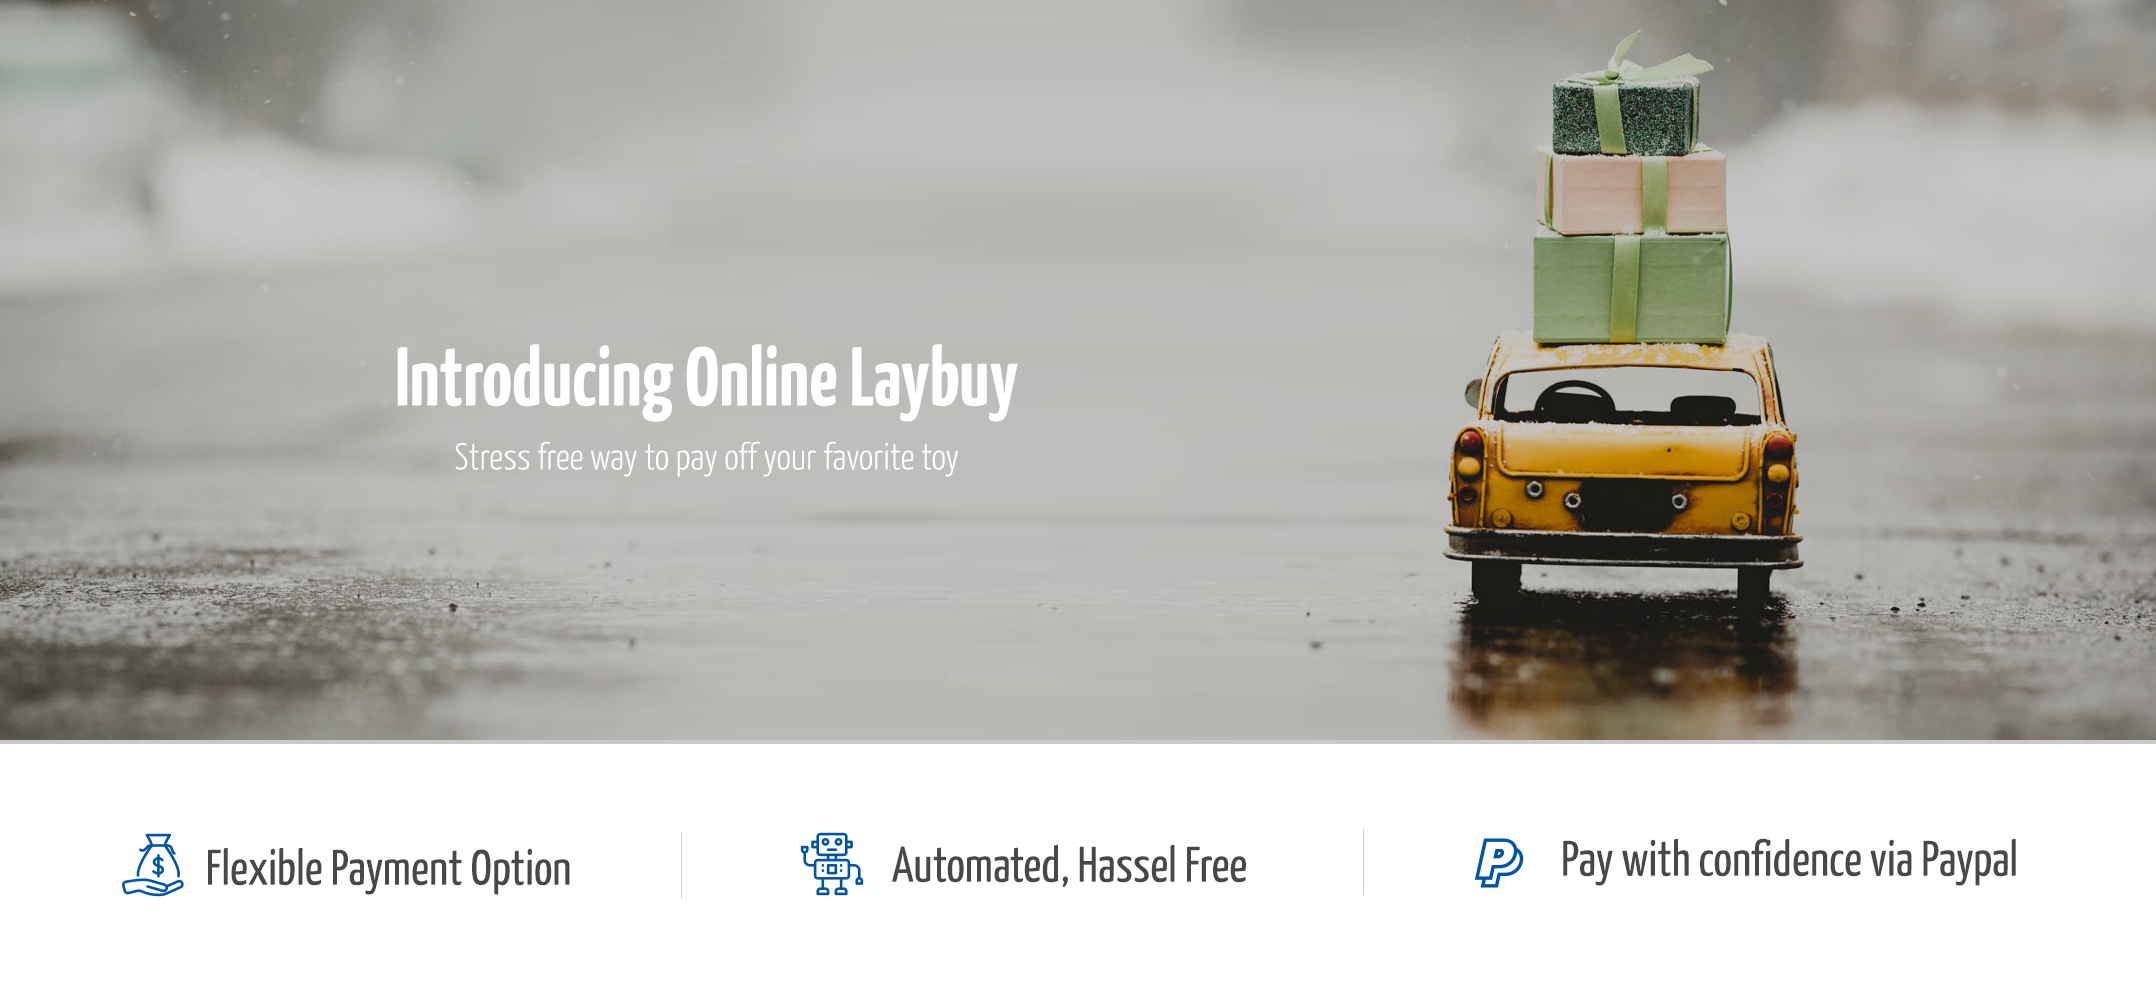 Introducing Online Layby